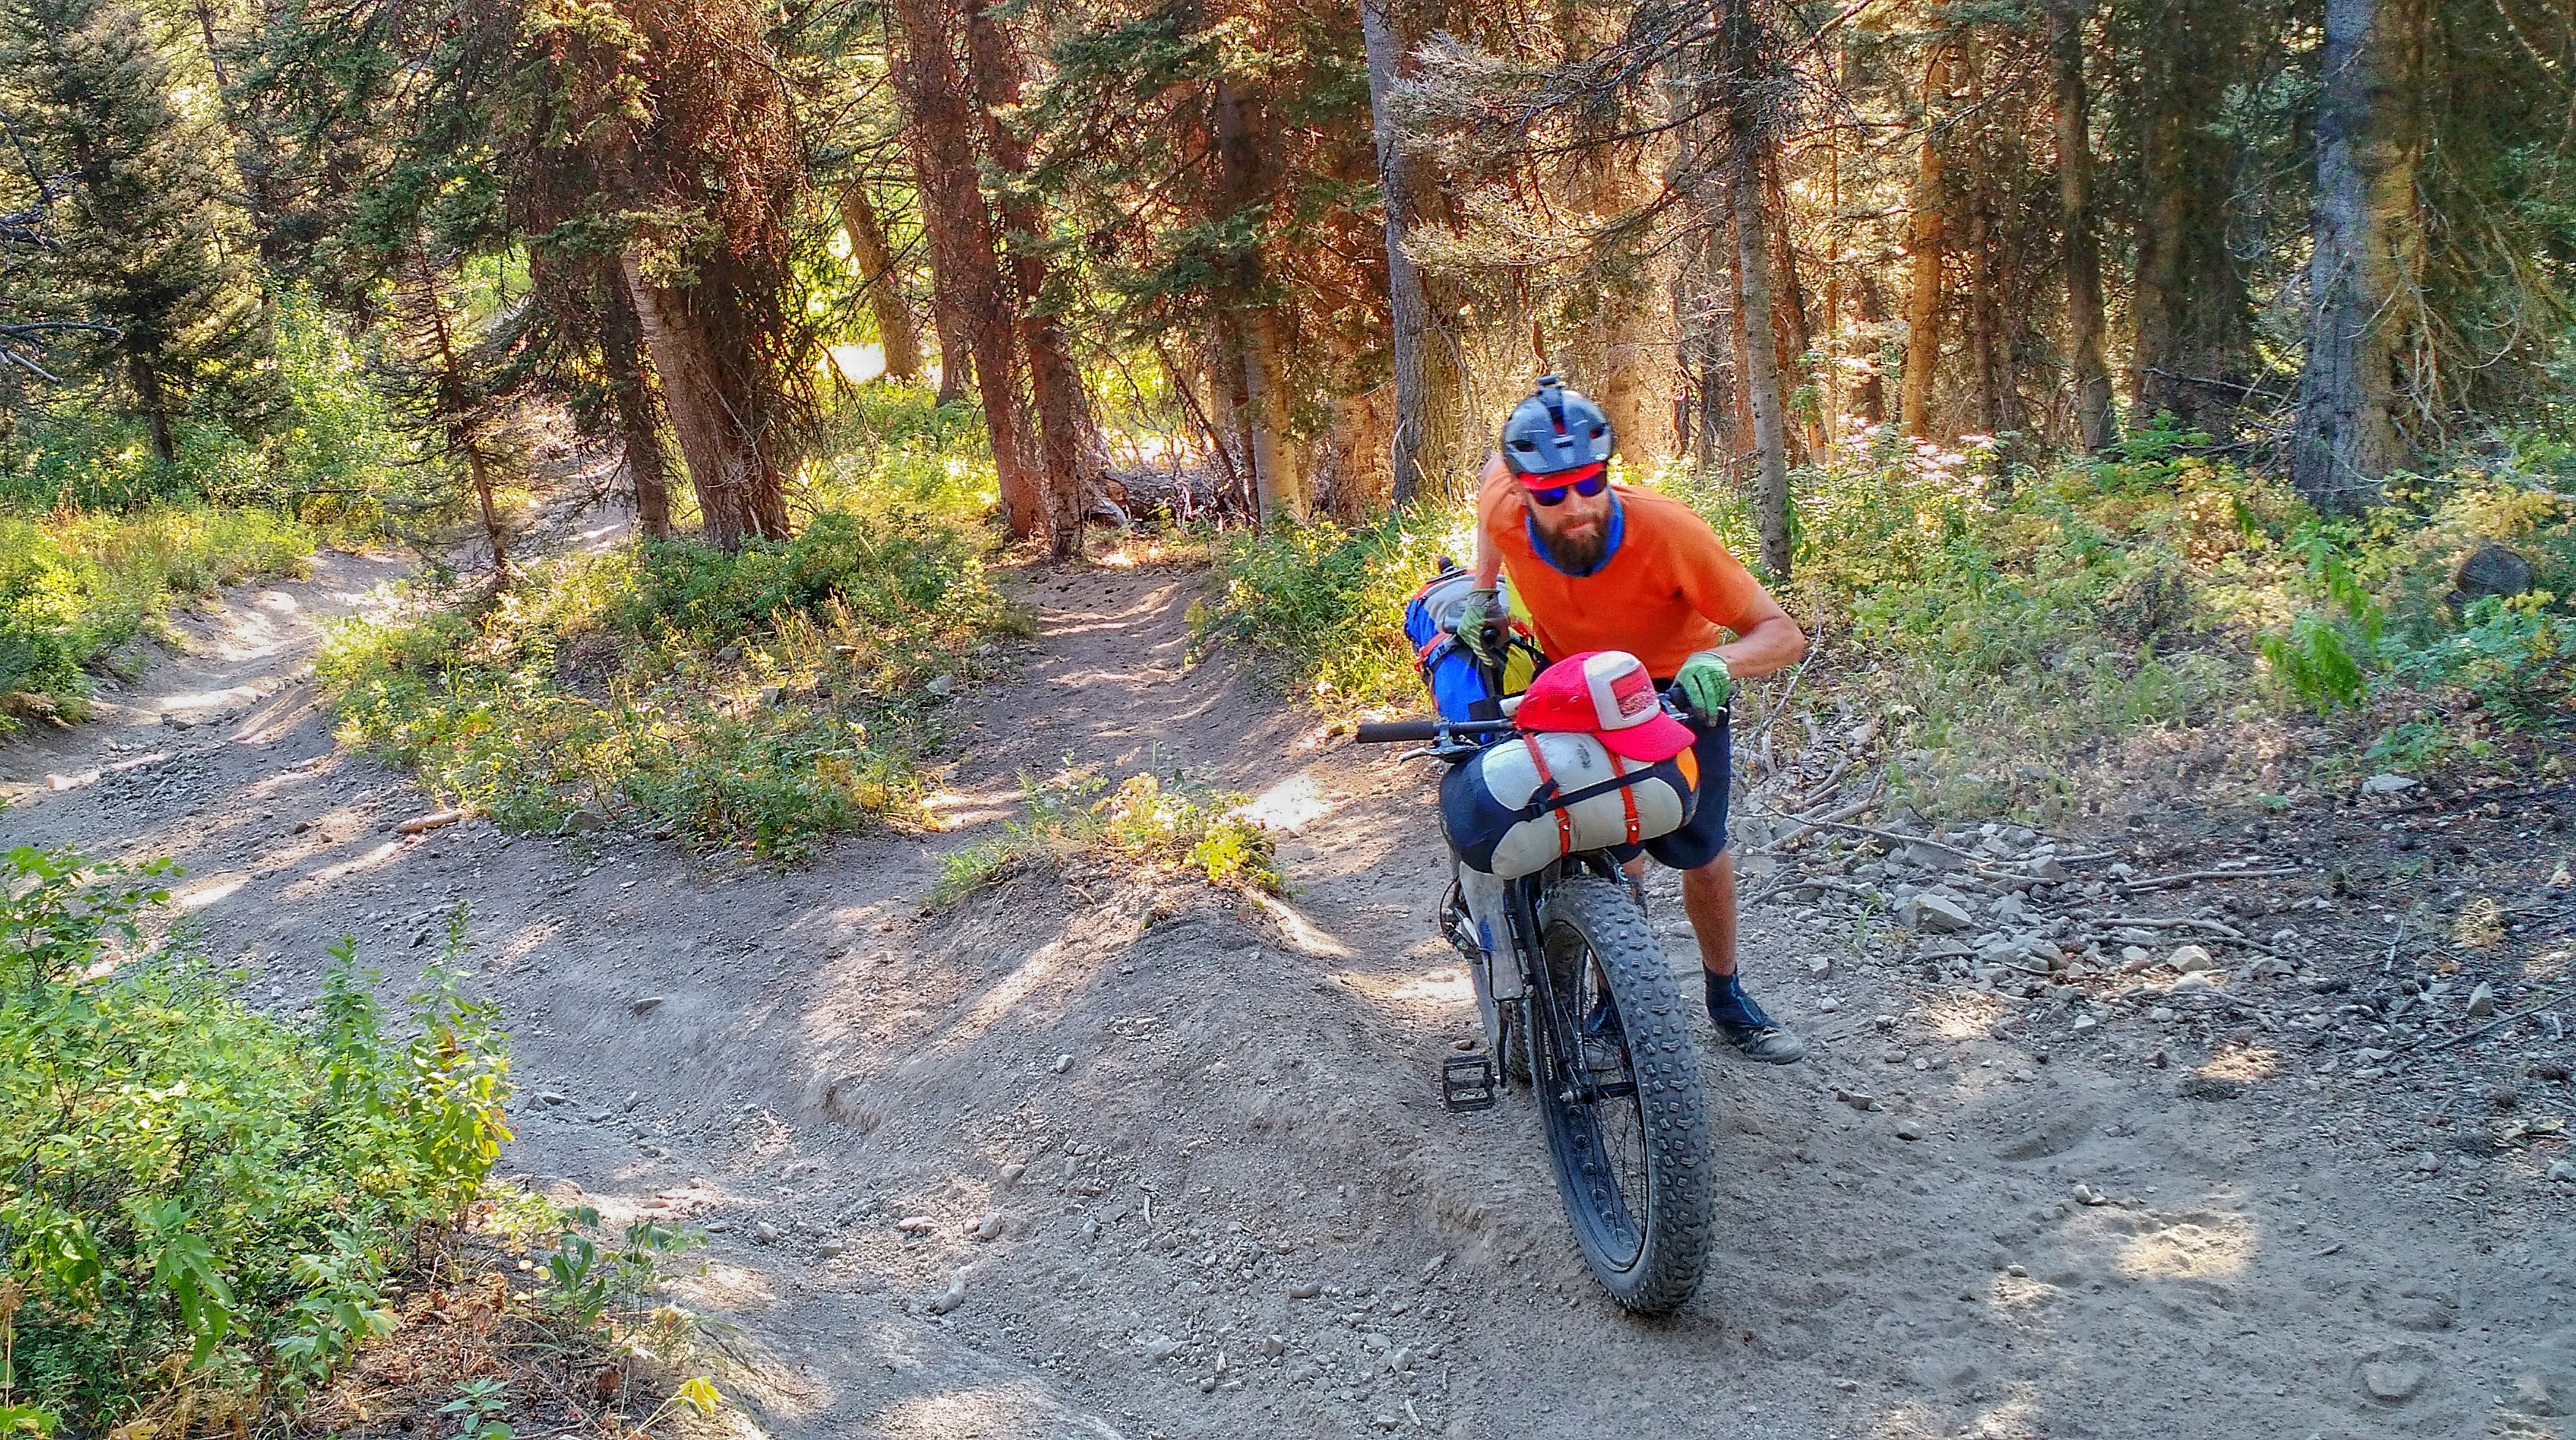 10 Lessons I Learned in a Year of Bikepacking